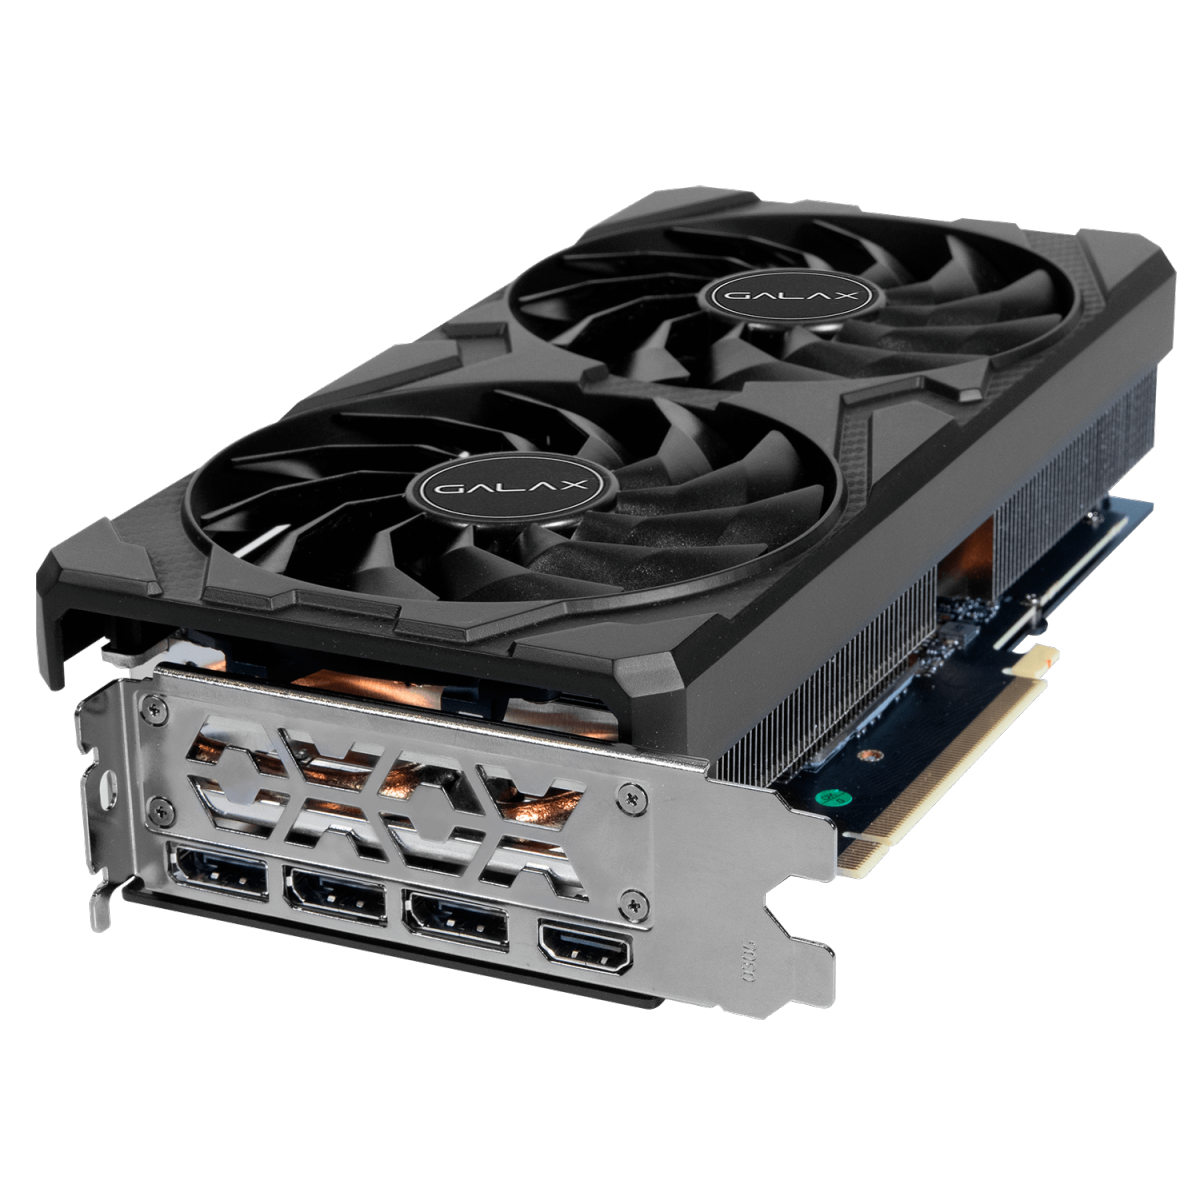 Placa de Vídeo Galax, GeForce RTX 3070 (1-Click OC), 8GB, GDDR6, 256bit, 37NSL6MD2KOC